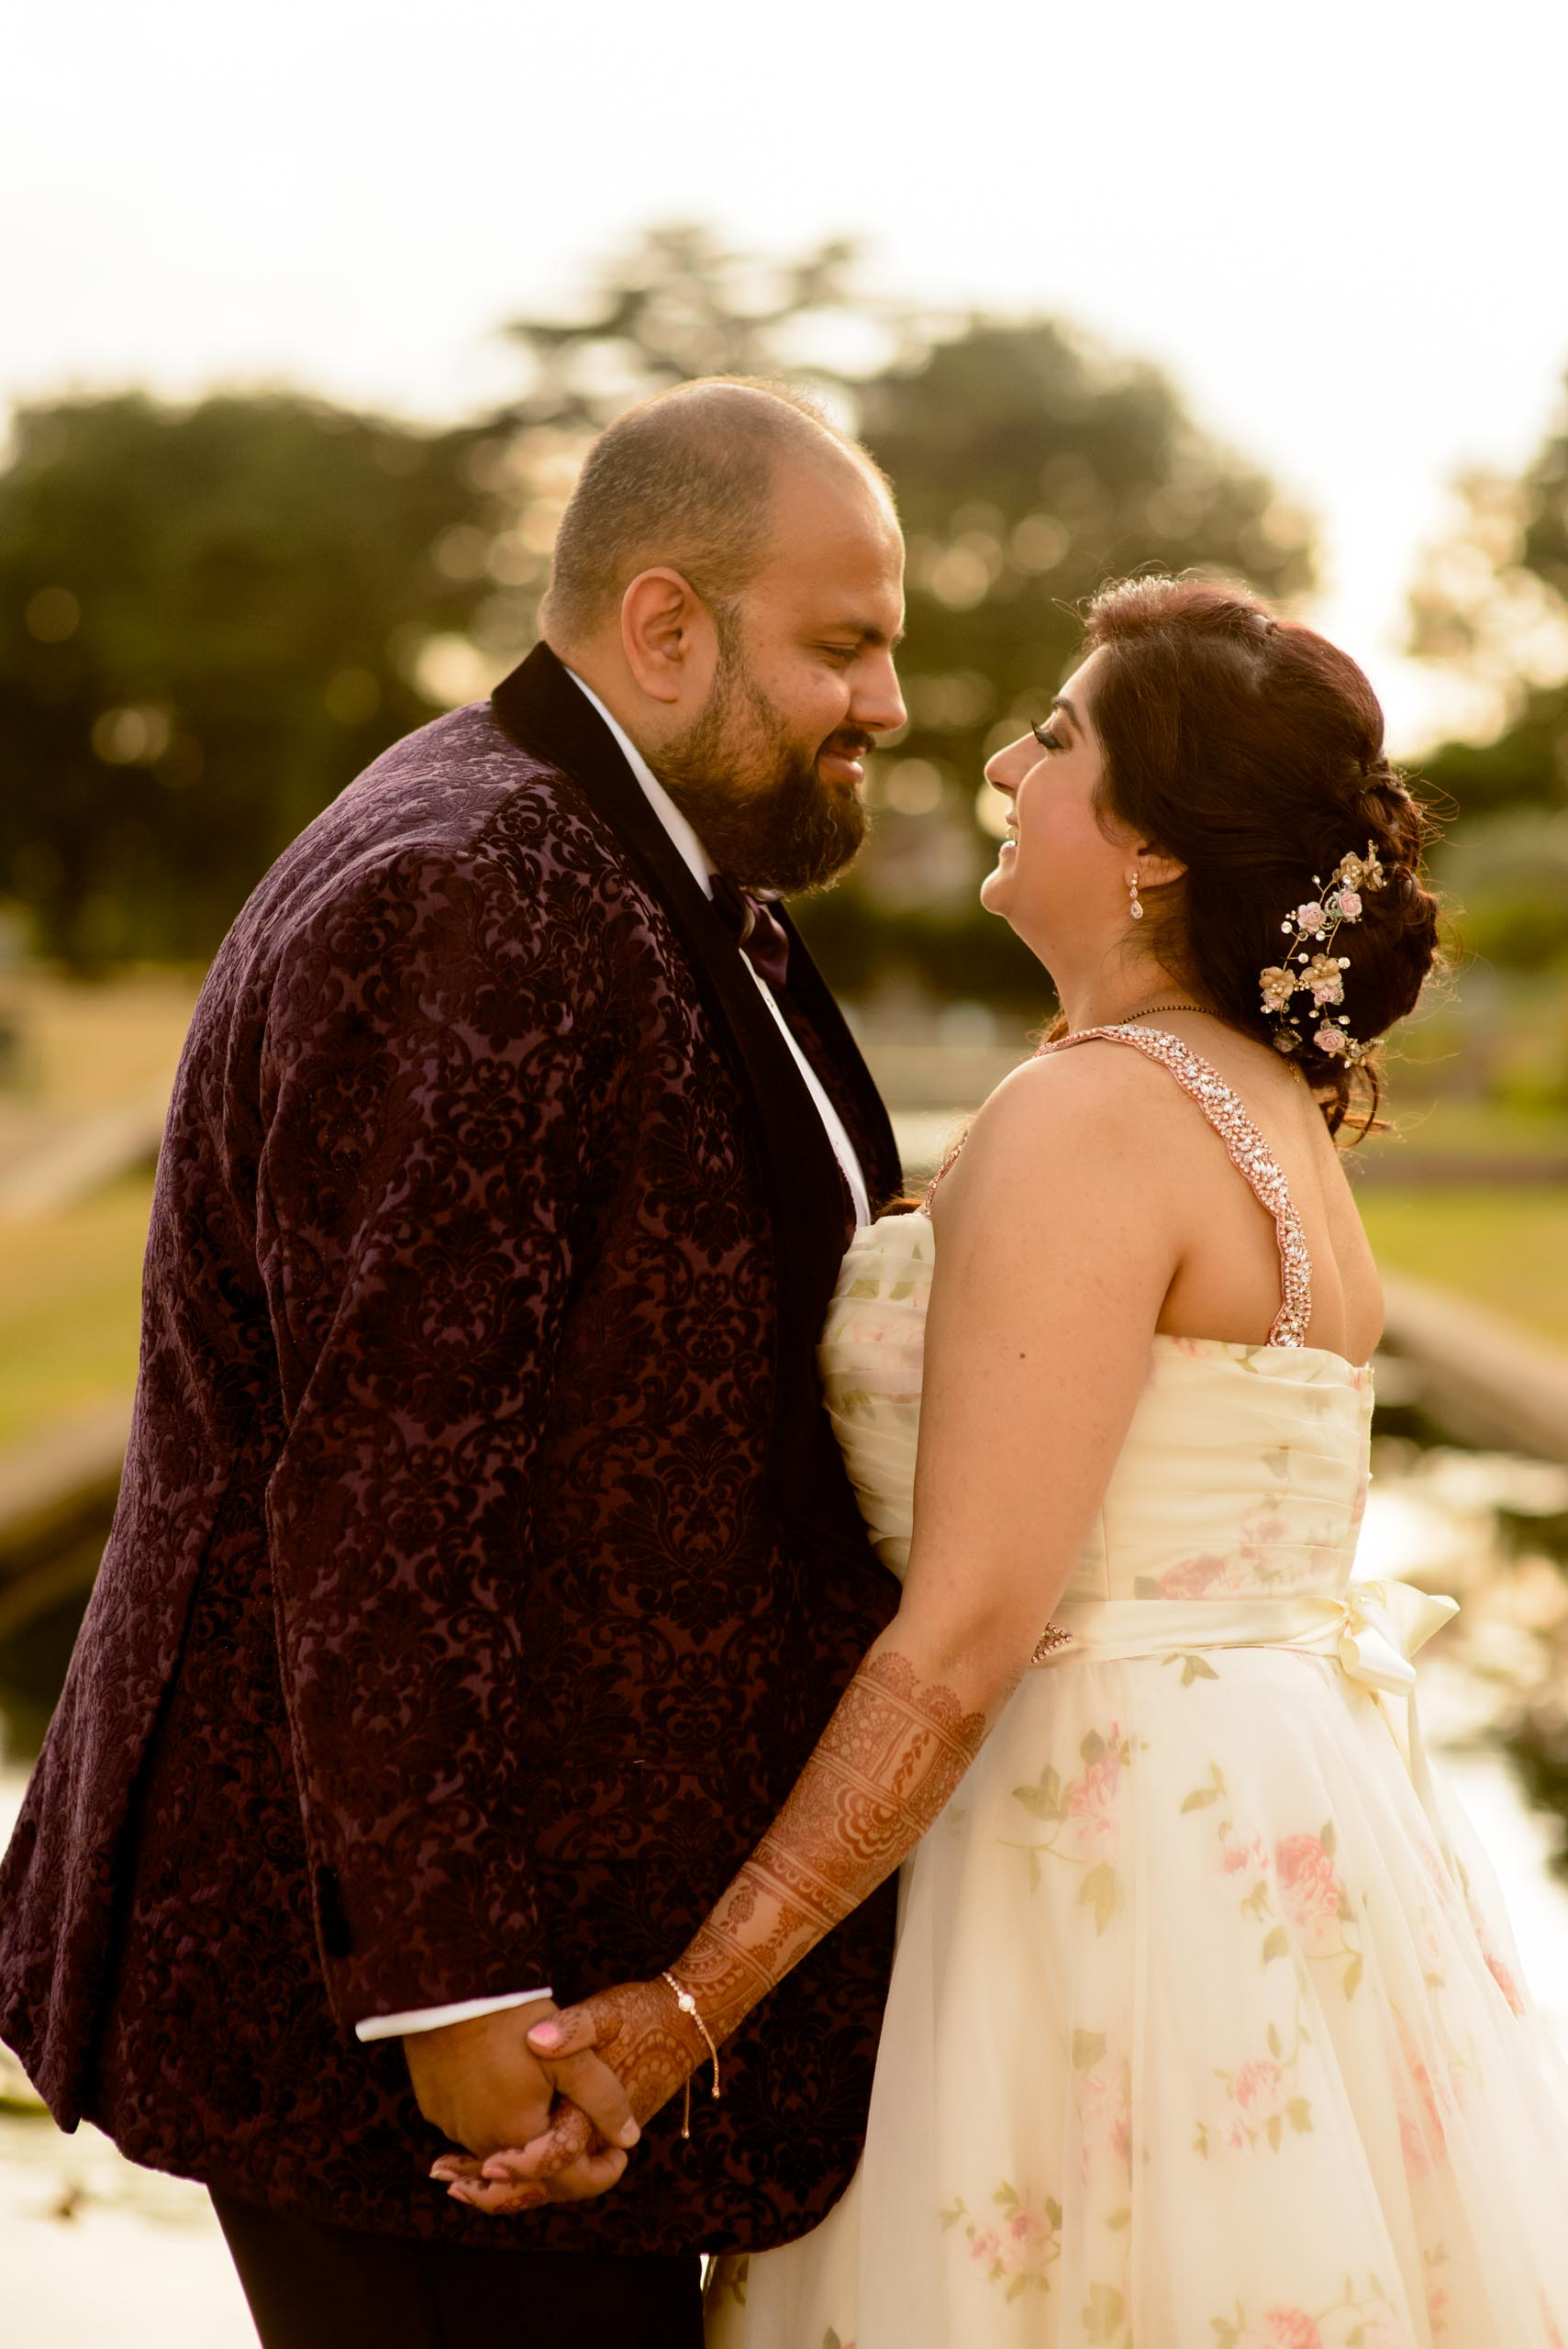 Amit&Amee-preview-edenmoments-15